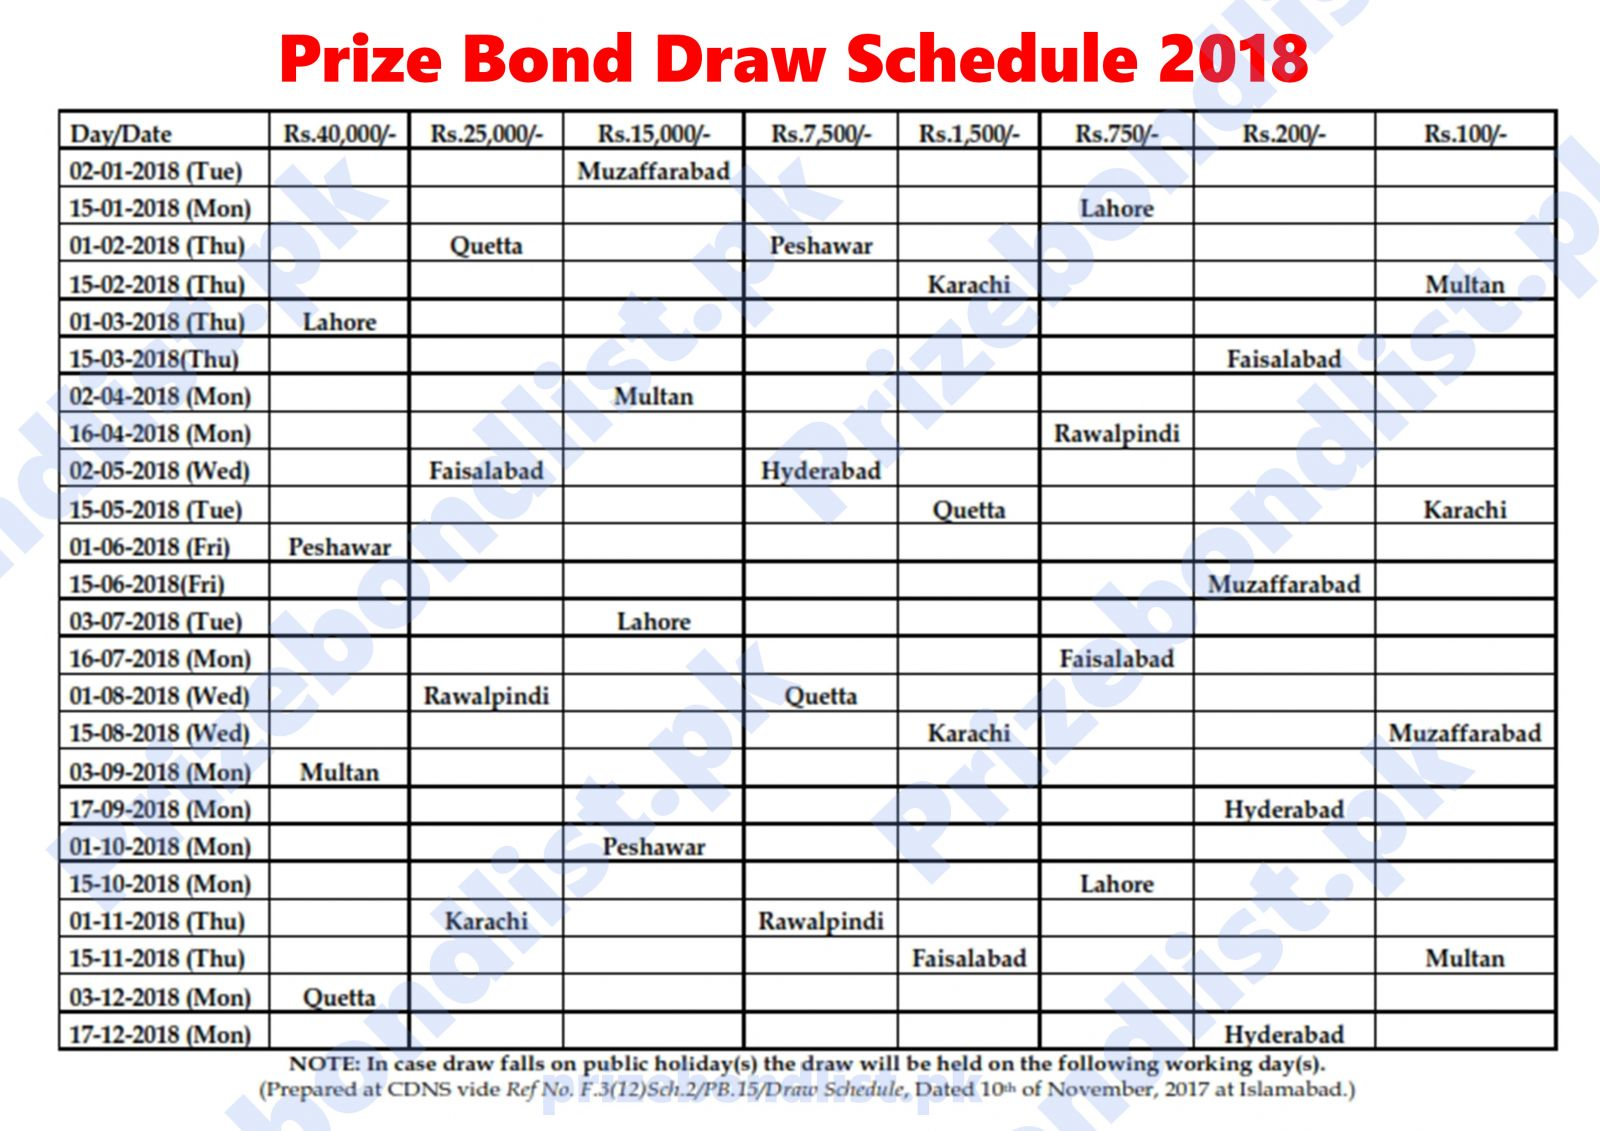 Prize Bond List 2018 and Prize Bond Schedule